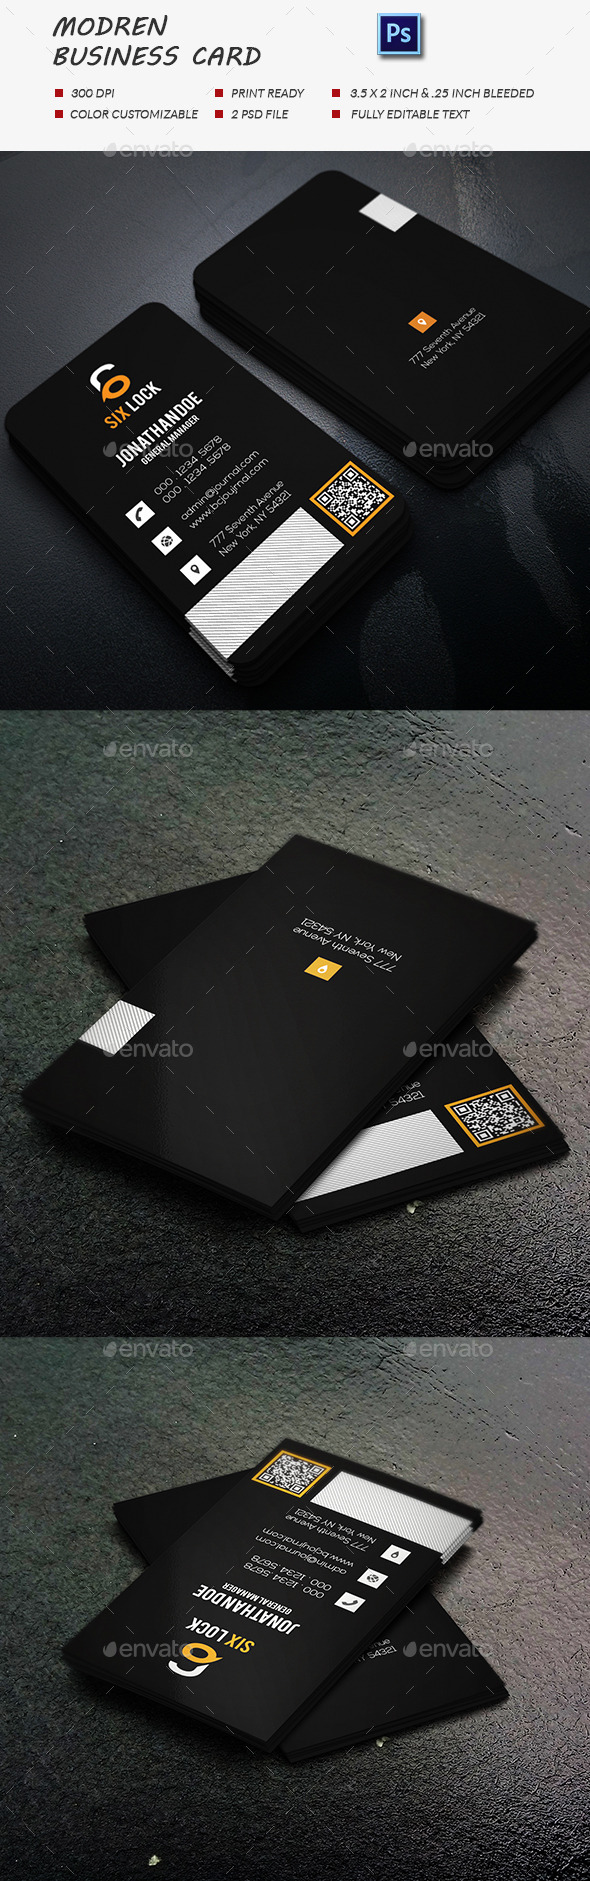 GraphicRiver Modern Business Card 11929523